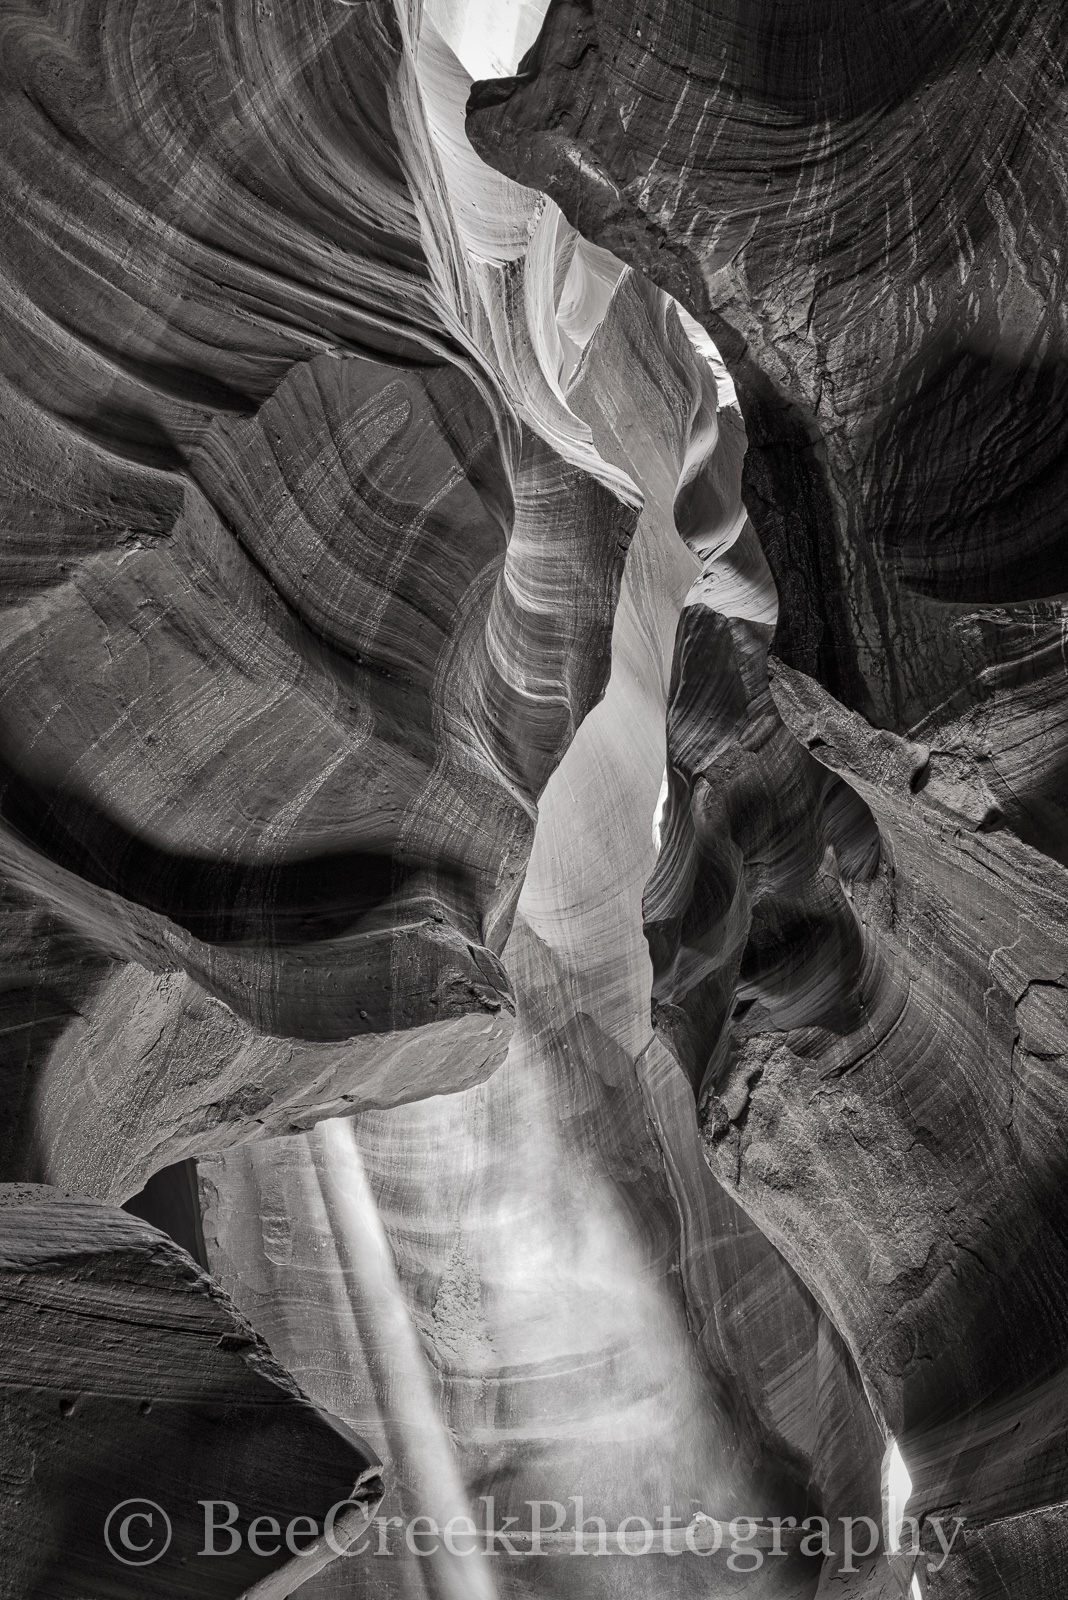 Slot Canyon BW-Only a gleam of light now exposes the carved out area of the slot canyonin this black and white. The...